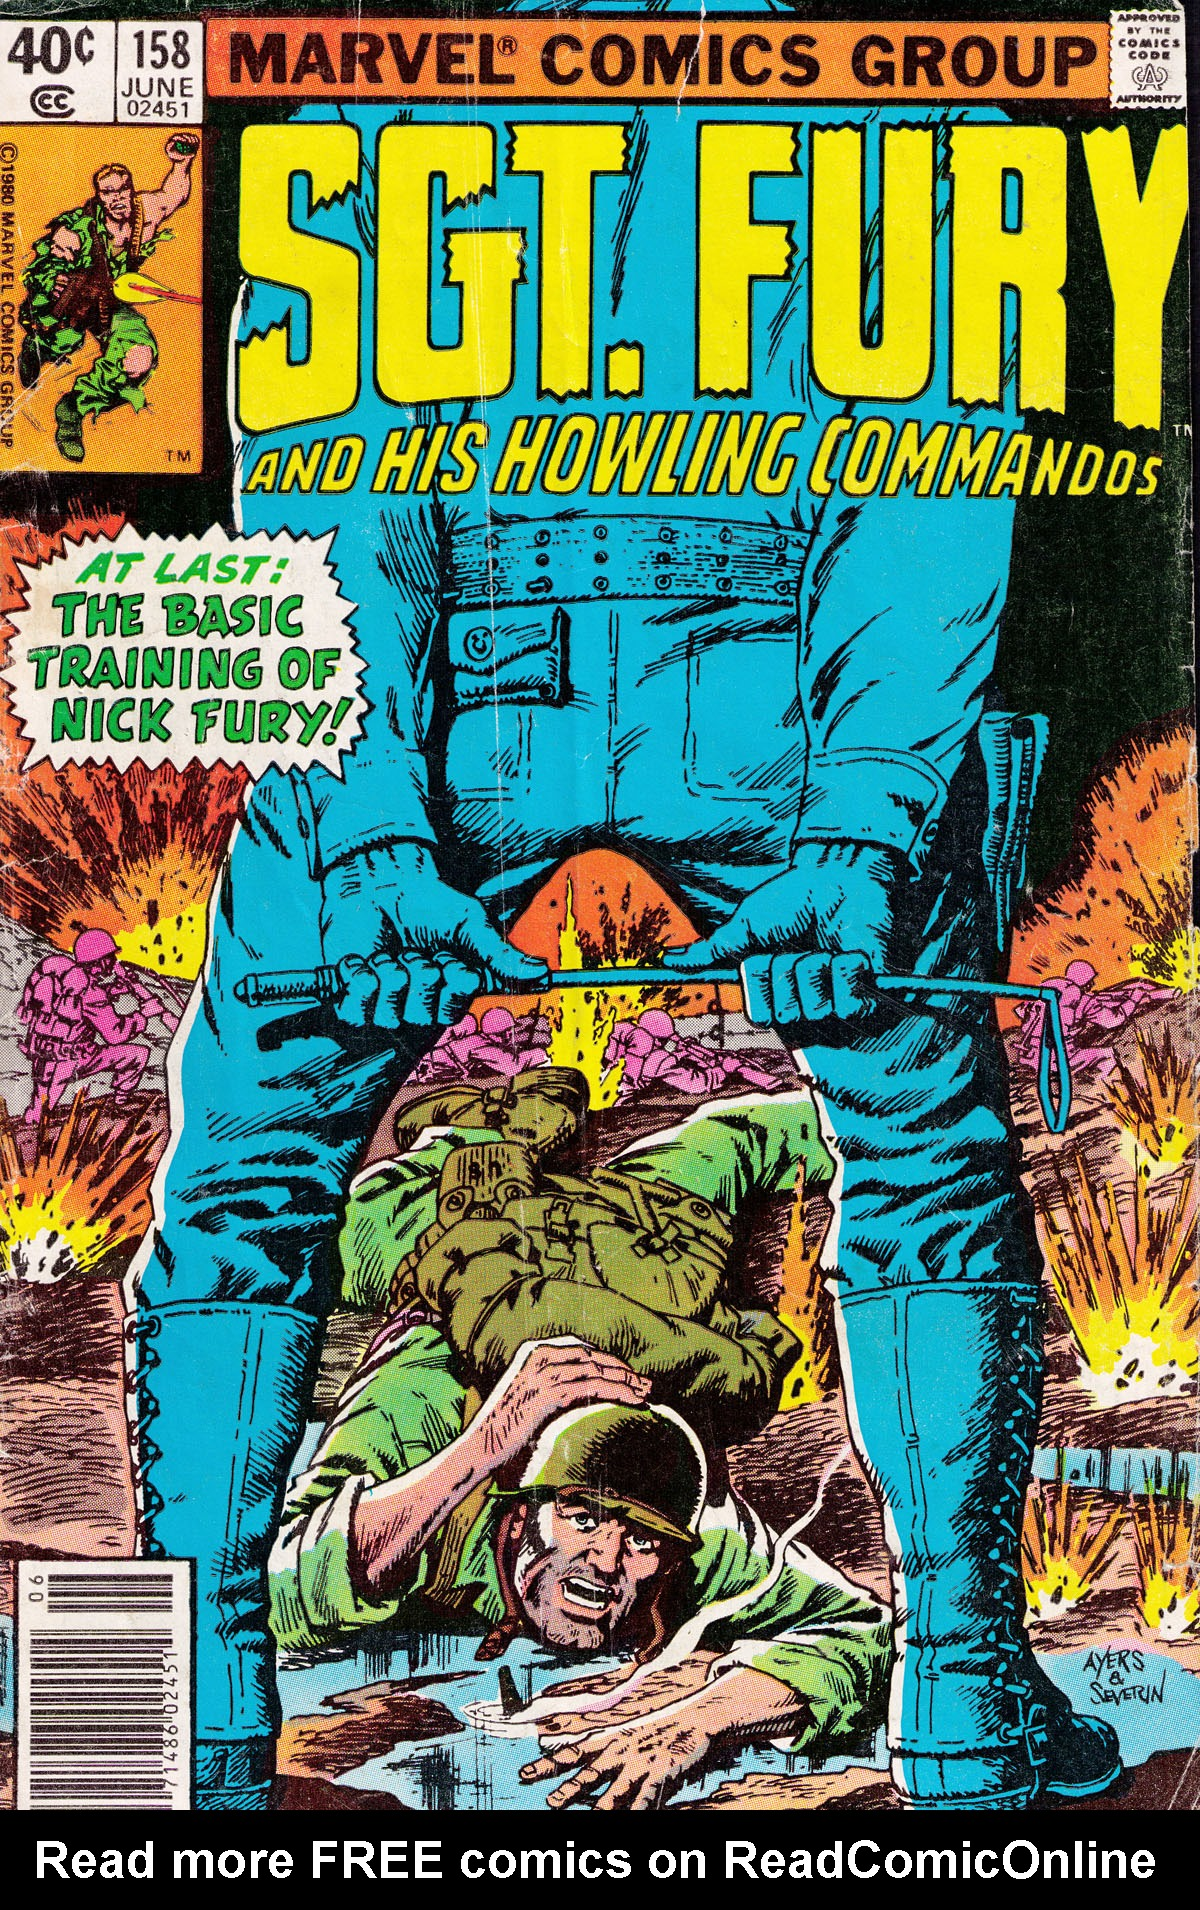 Read online Sgt. Fury comic -  Issue #158 - 1